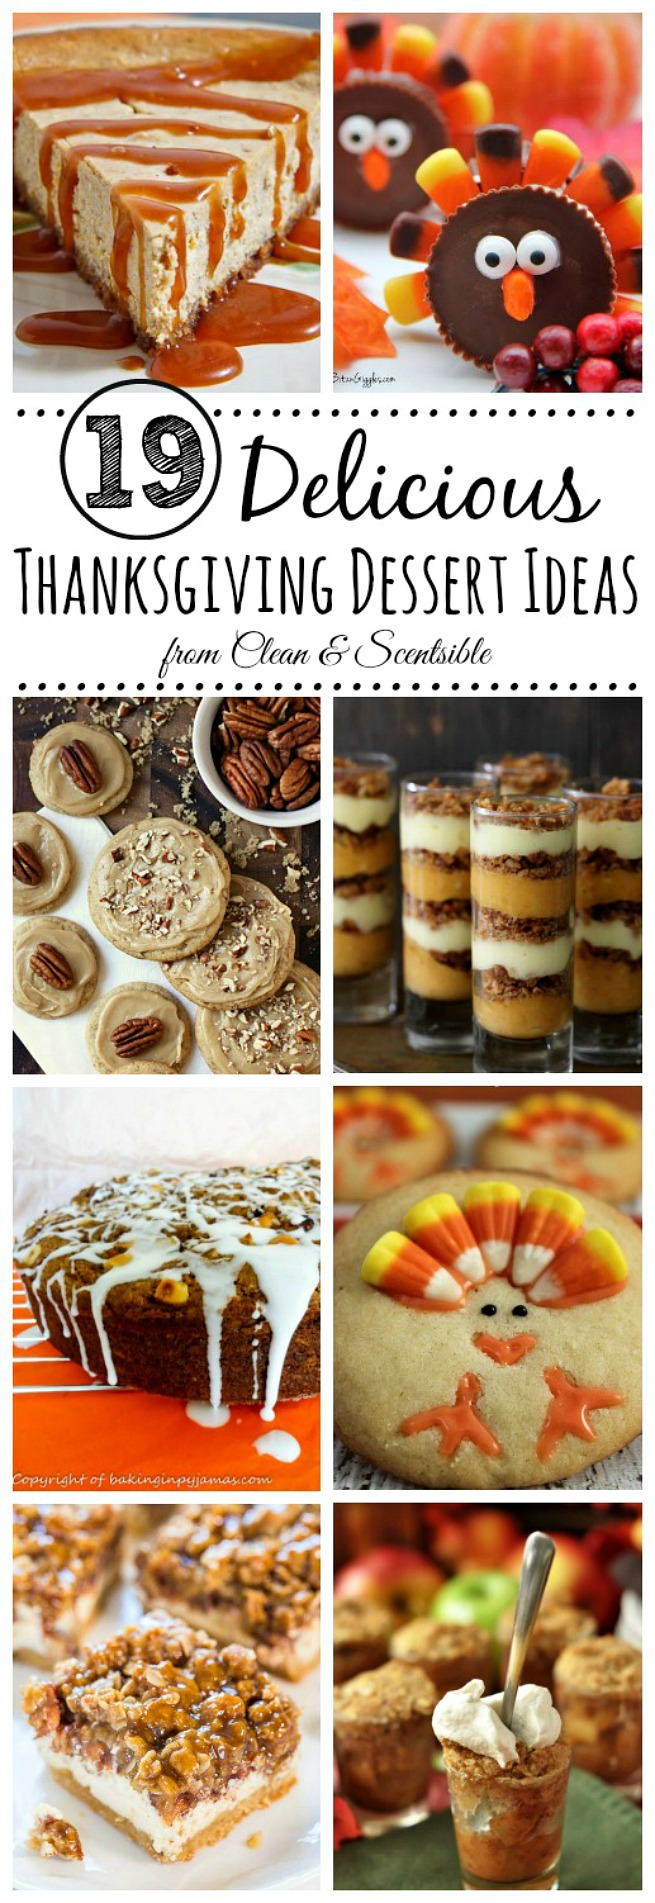 Delicious Thanksgiving dessert ideas.